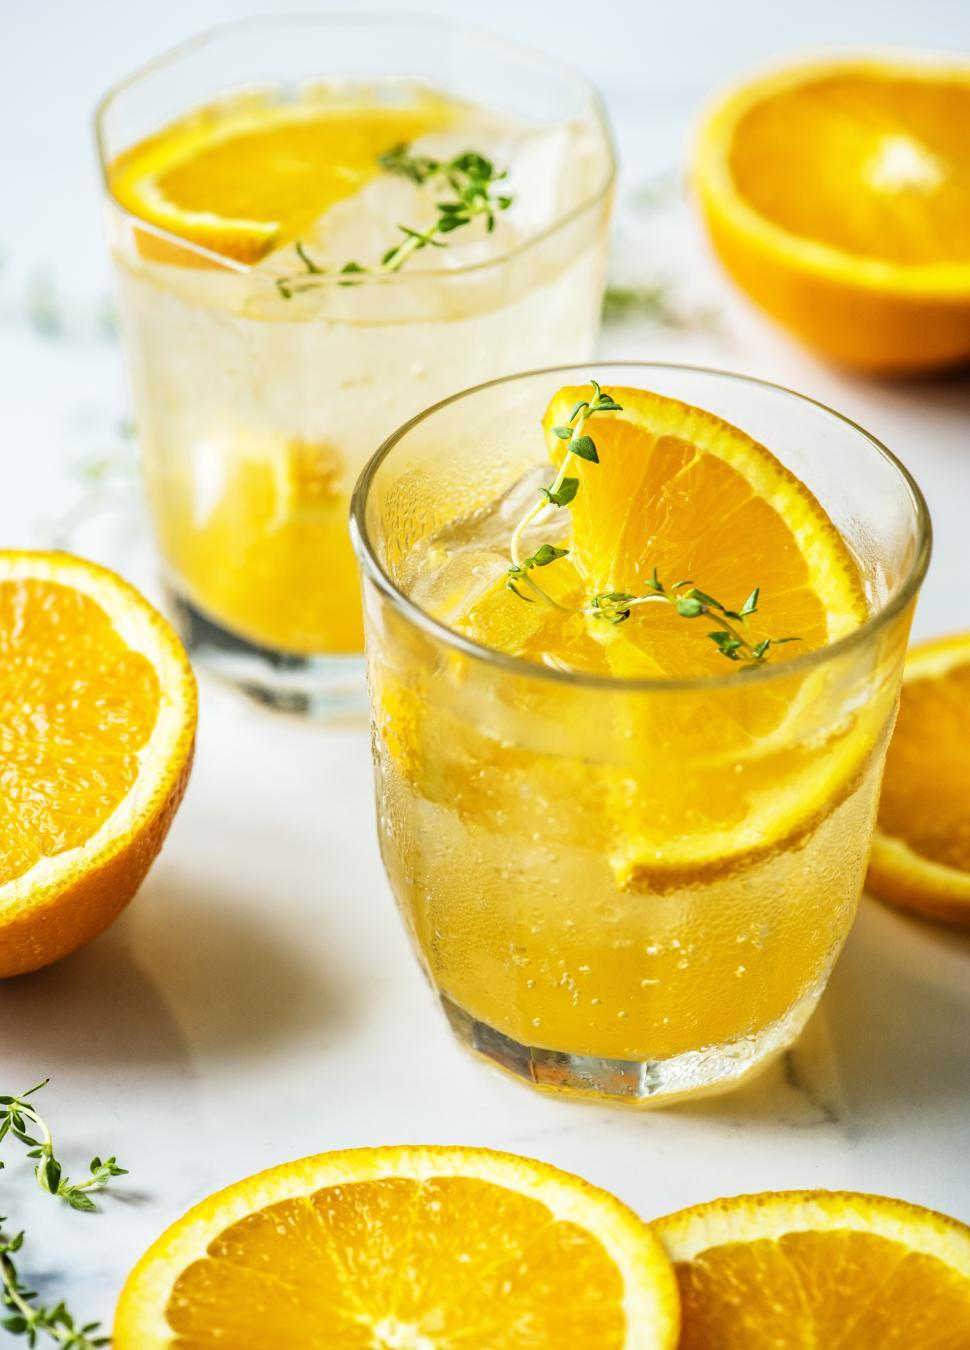 Download Free Stock HD Photo of Chilled beverages in glasses garnished with orange slices Online